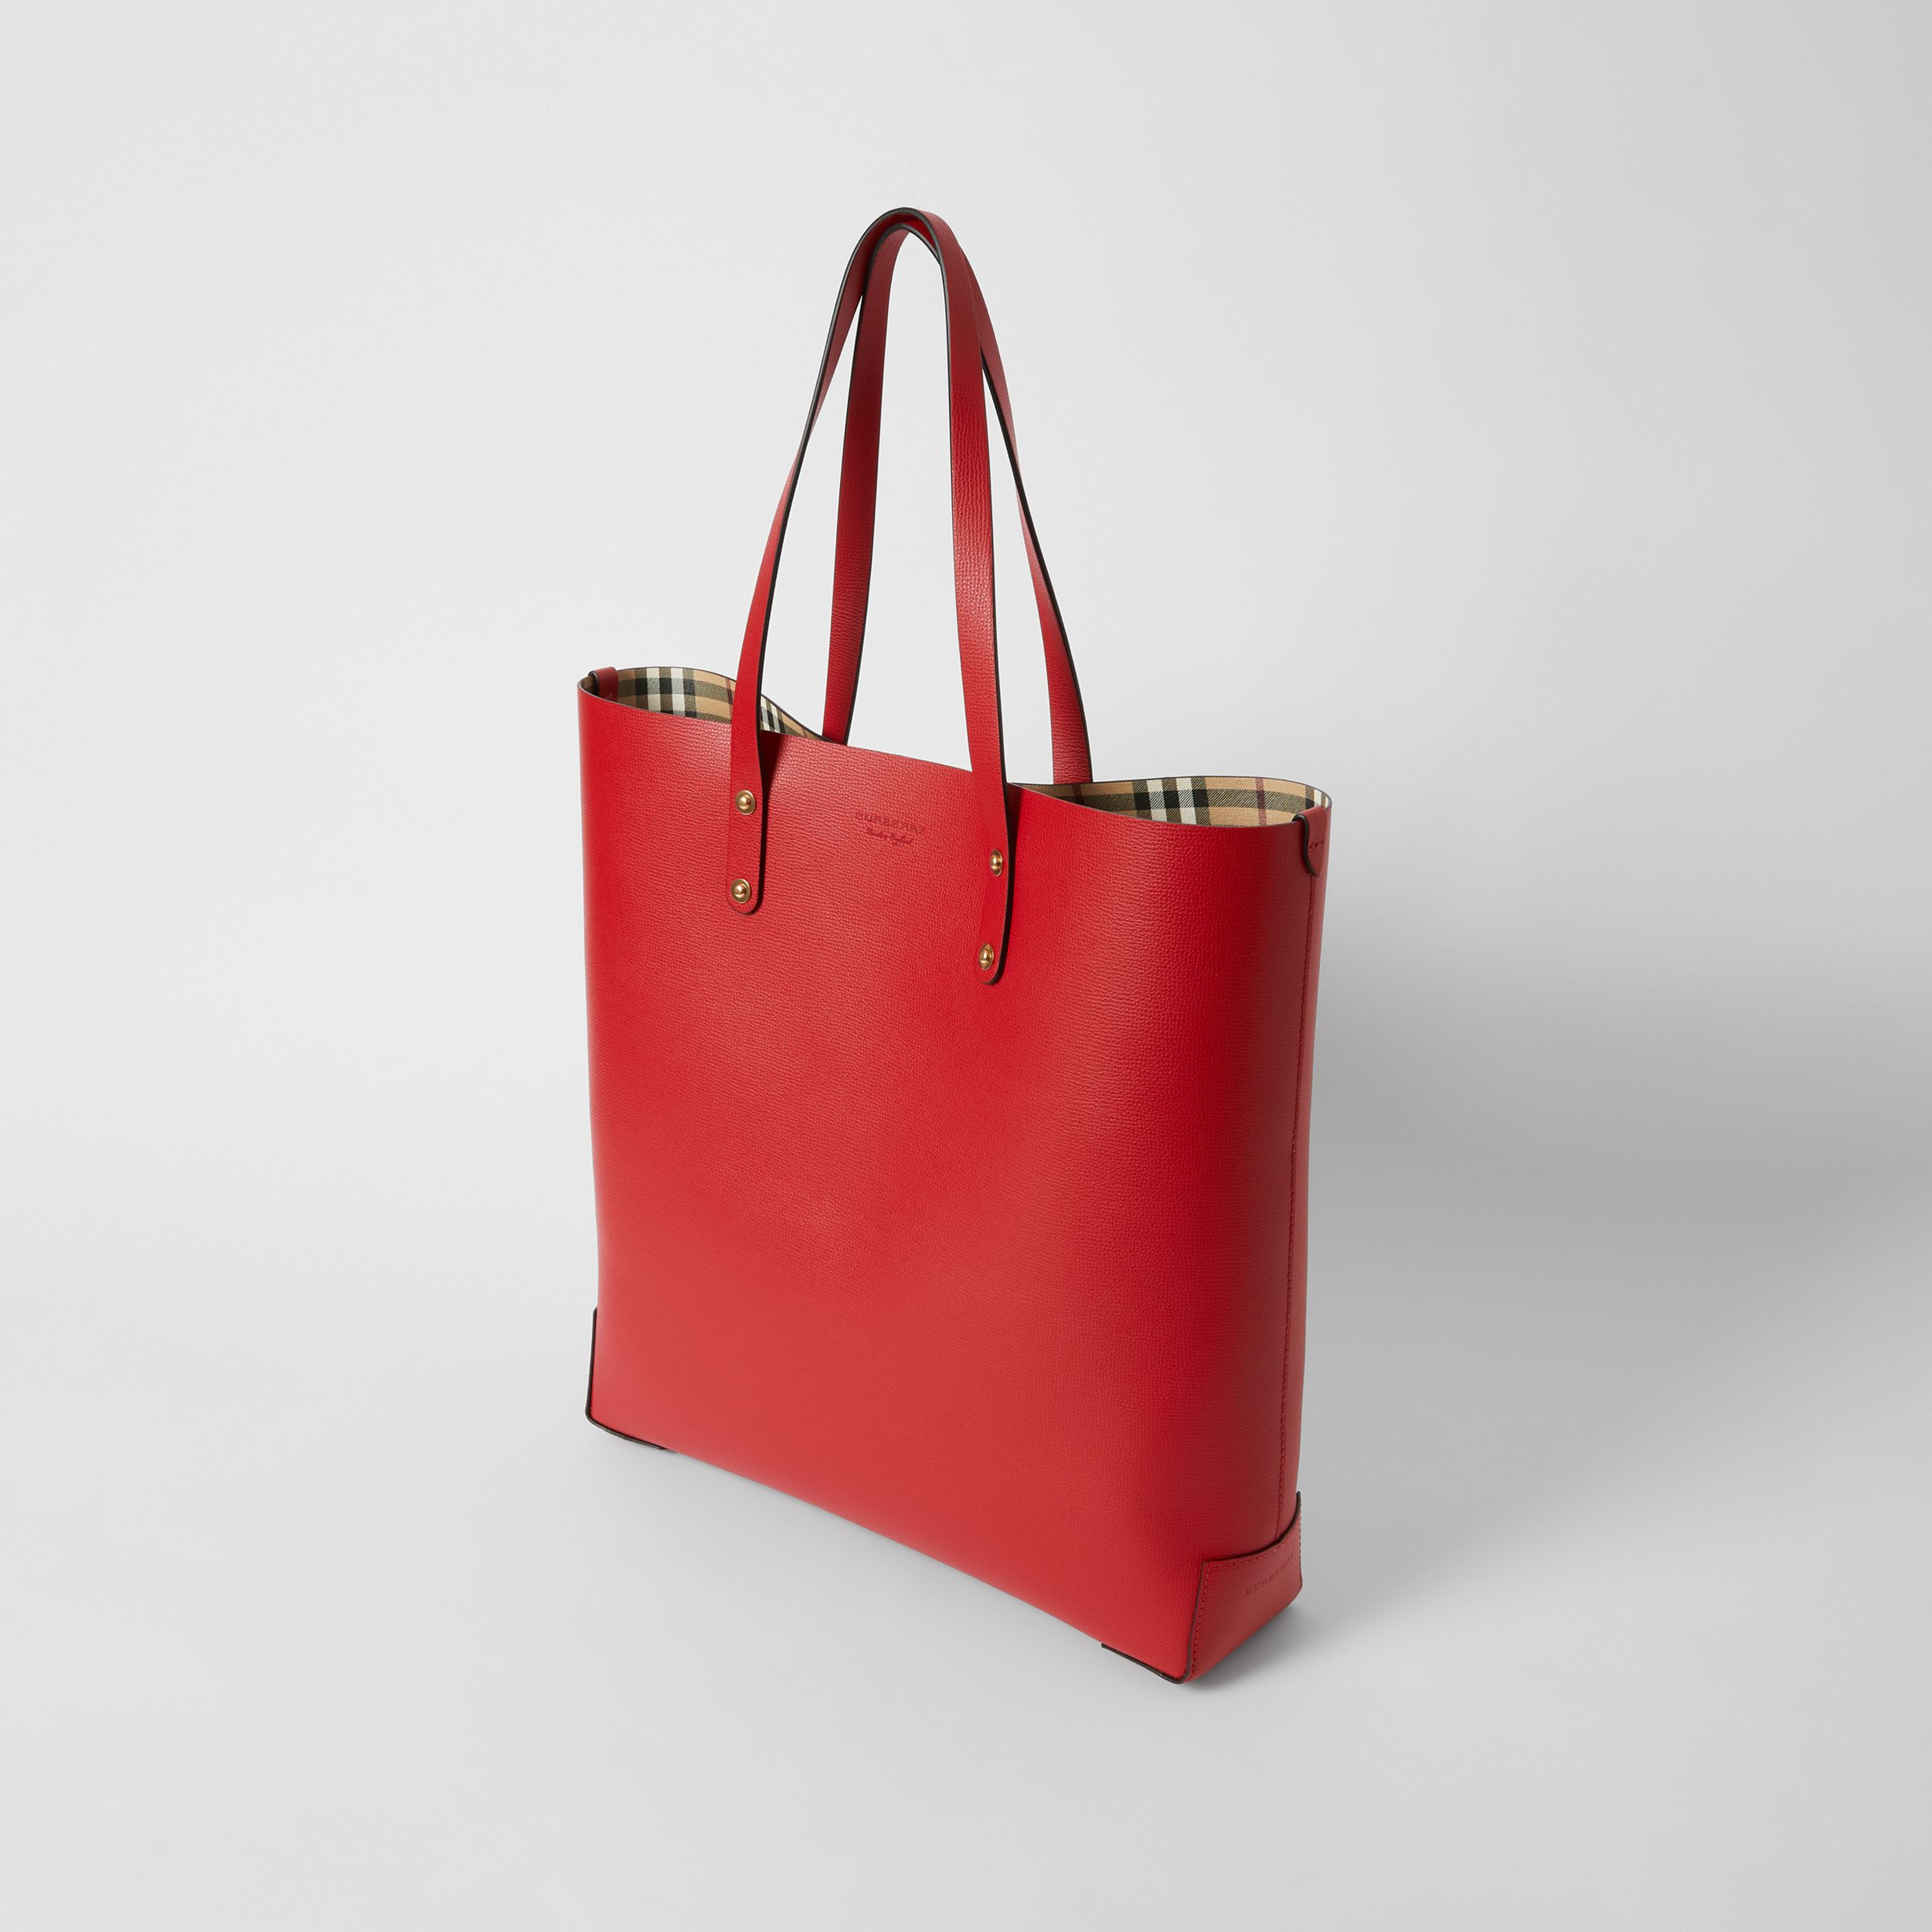 Large Grainy Leather Tote Bag in Rust Red - Women | Burberry - 3